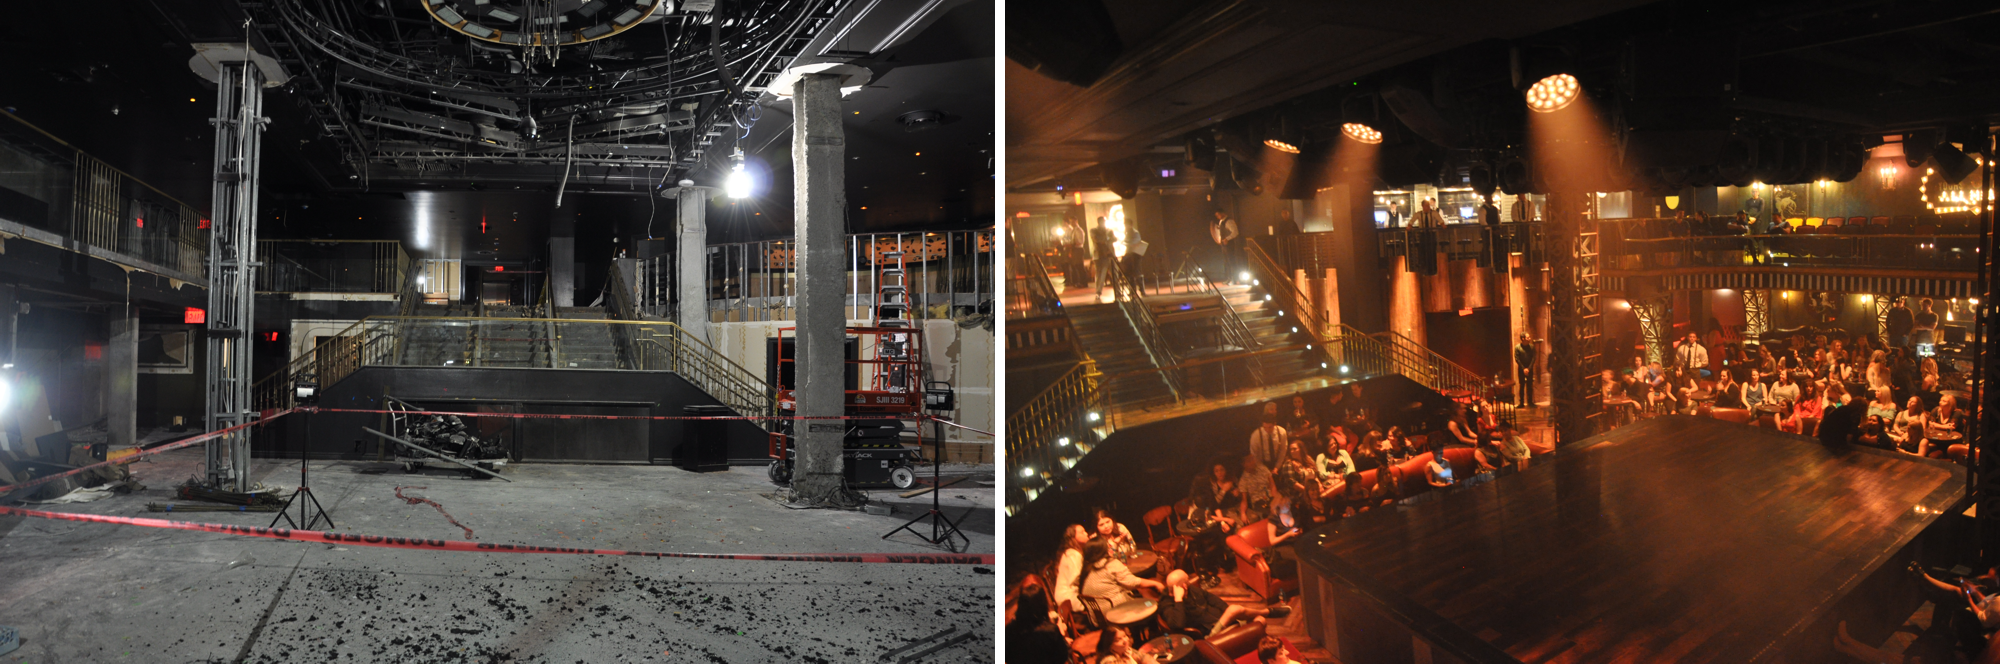 Photo|Model: Venue Before & After